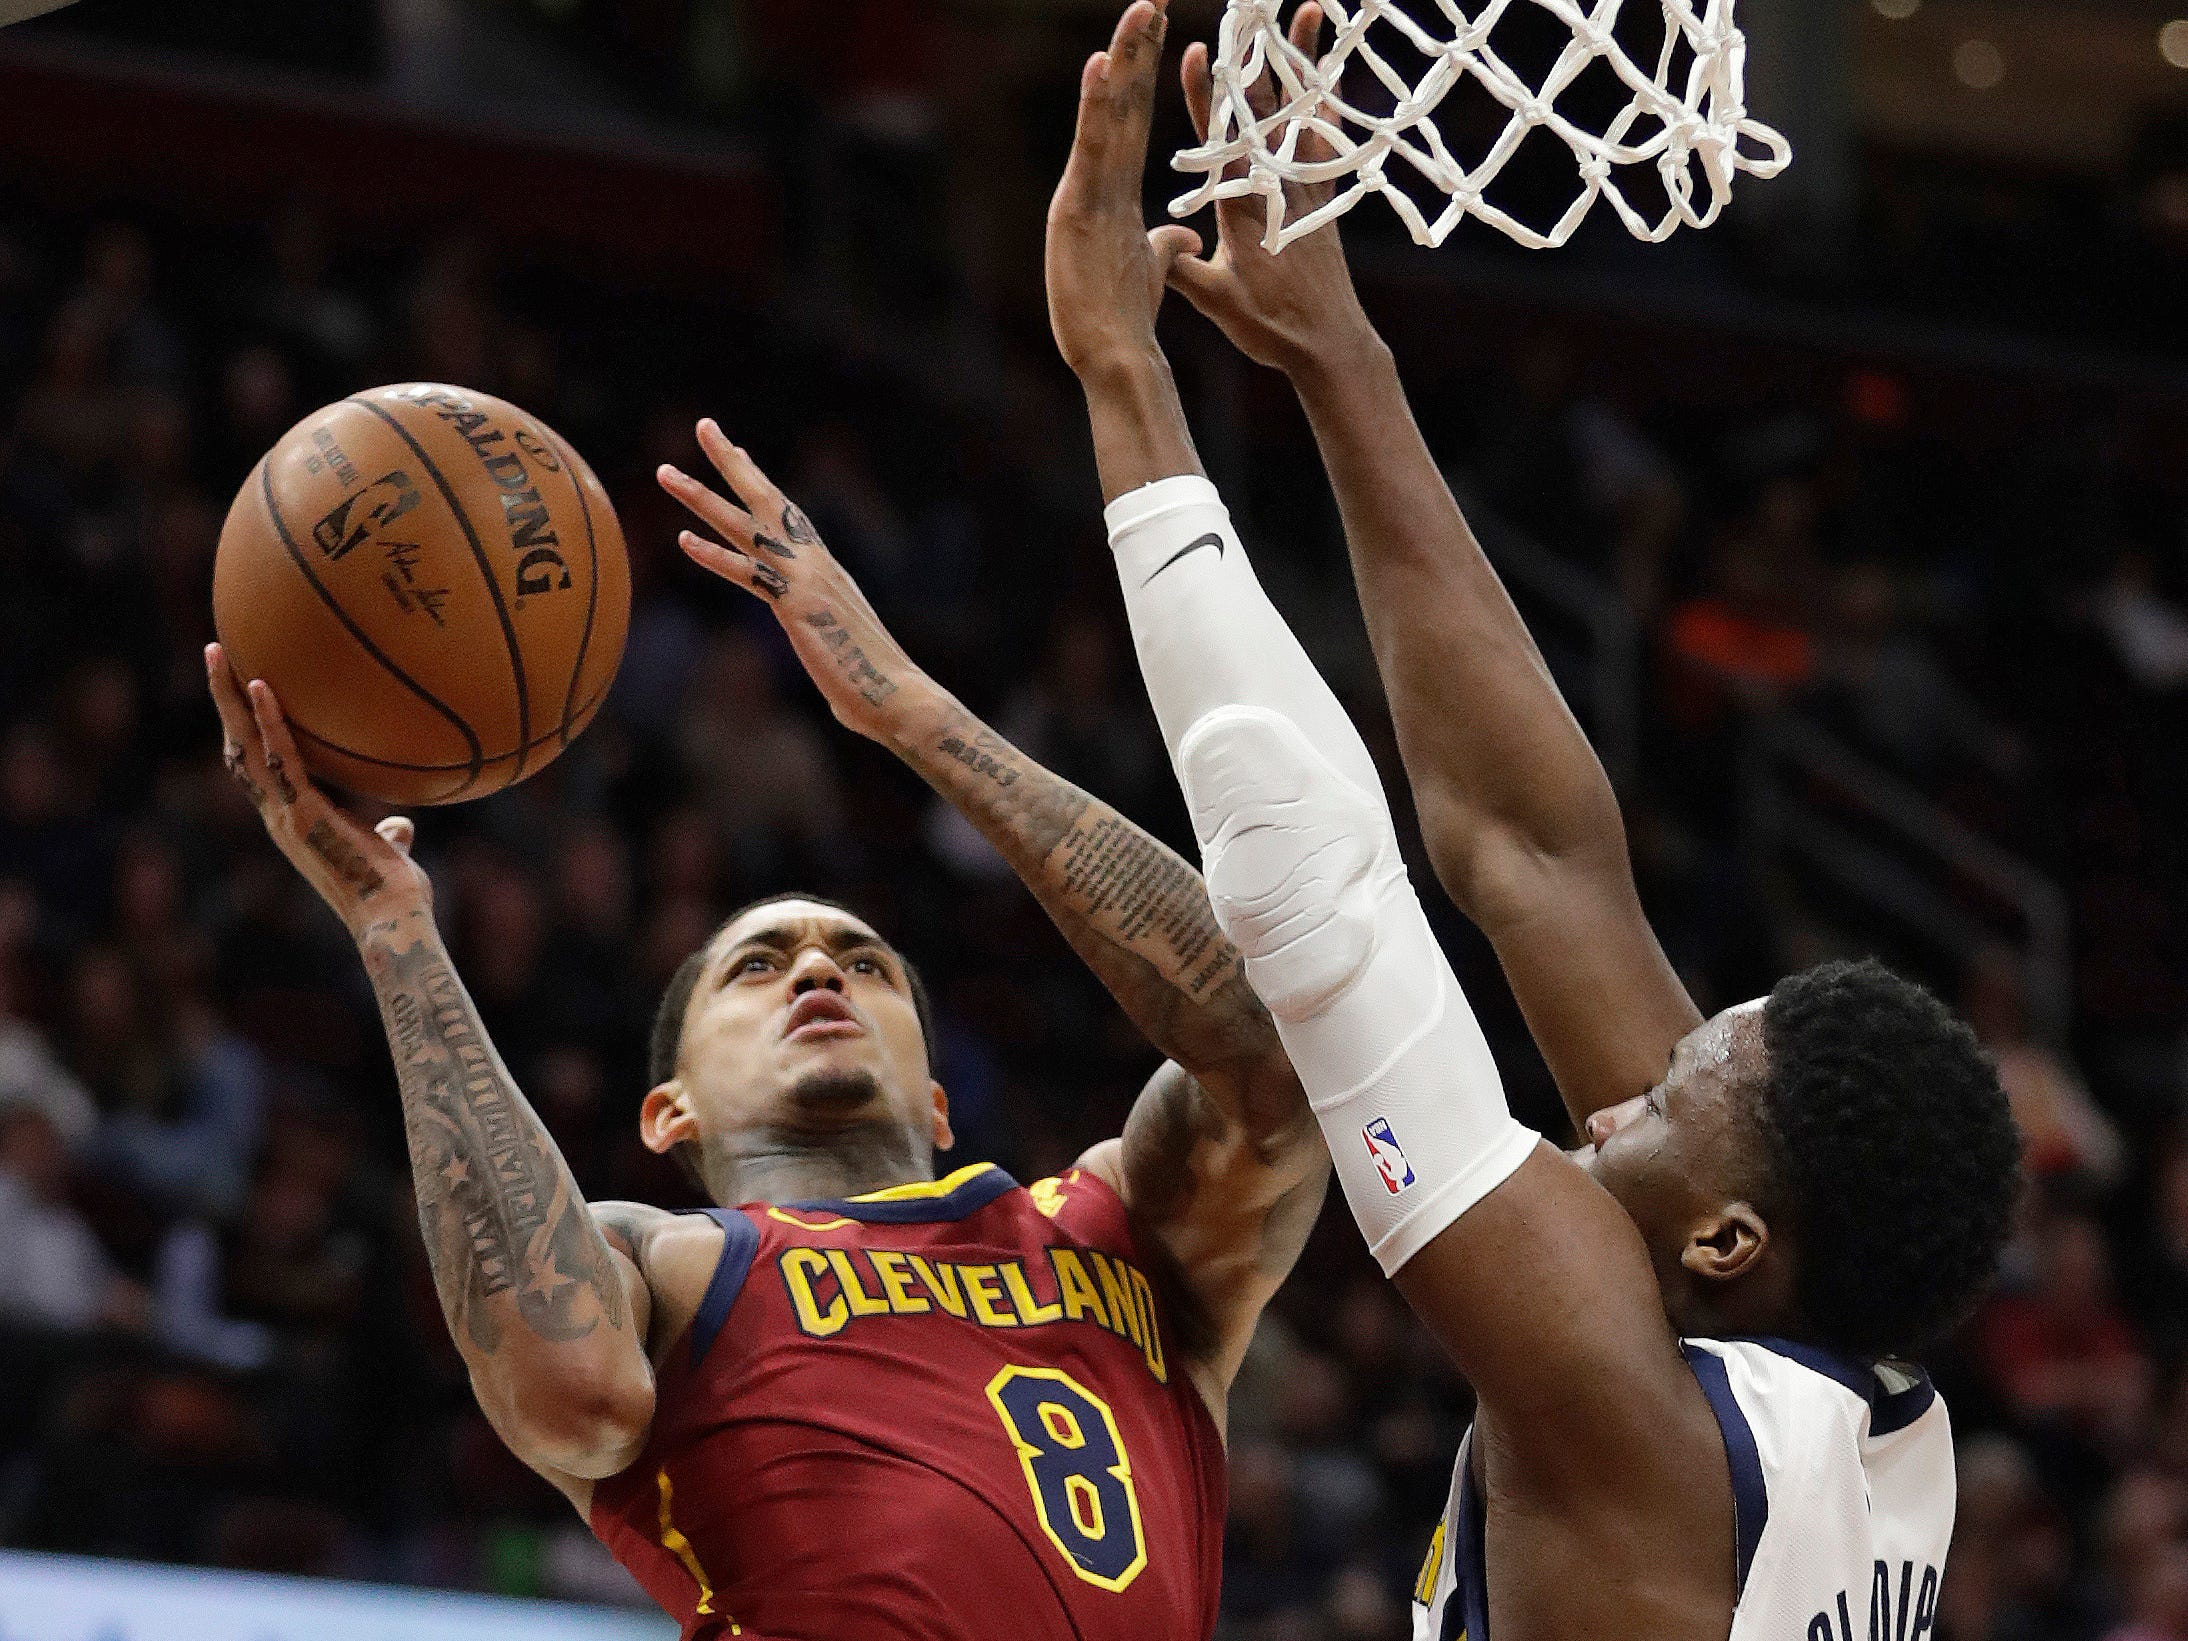 Cleveland Cavaliers' Jordan Clarkson (8) drives to the basket against Indiana Pacers' Victor Oladipo (4) during the first half of an NBA basketball game, Tuesday, Jan. 8, 2019, in Cleveland.